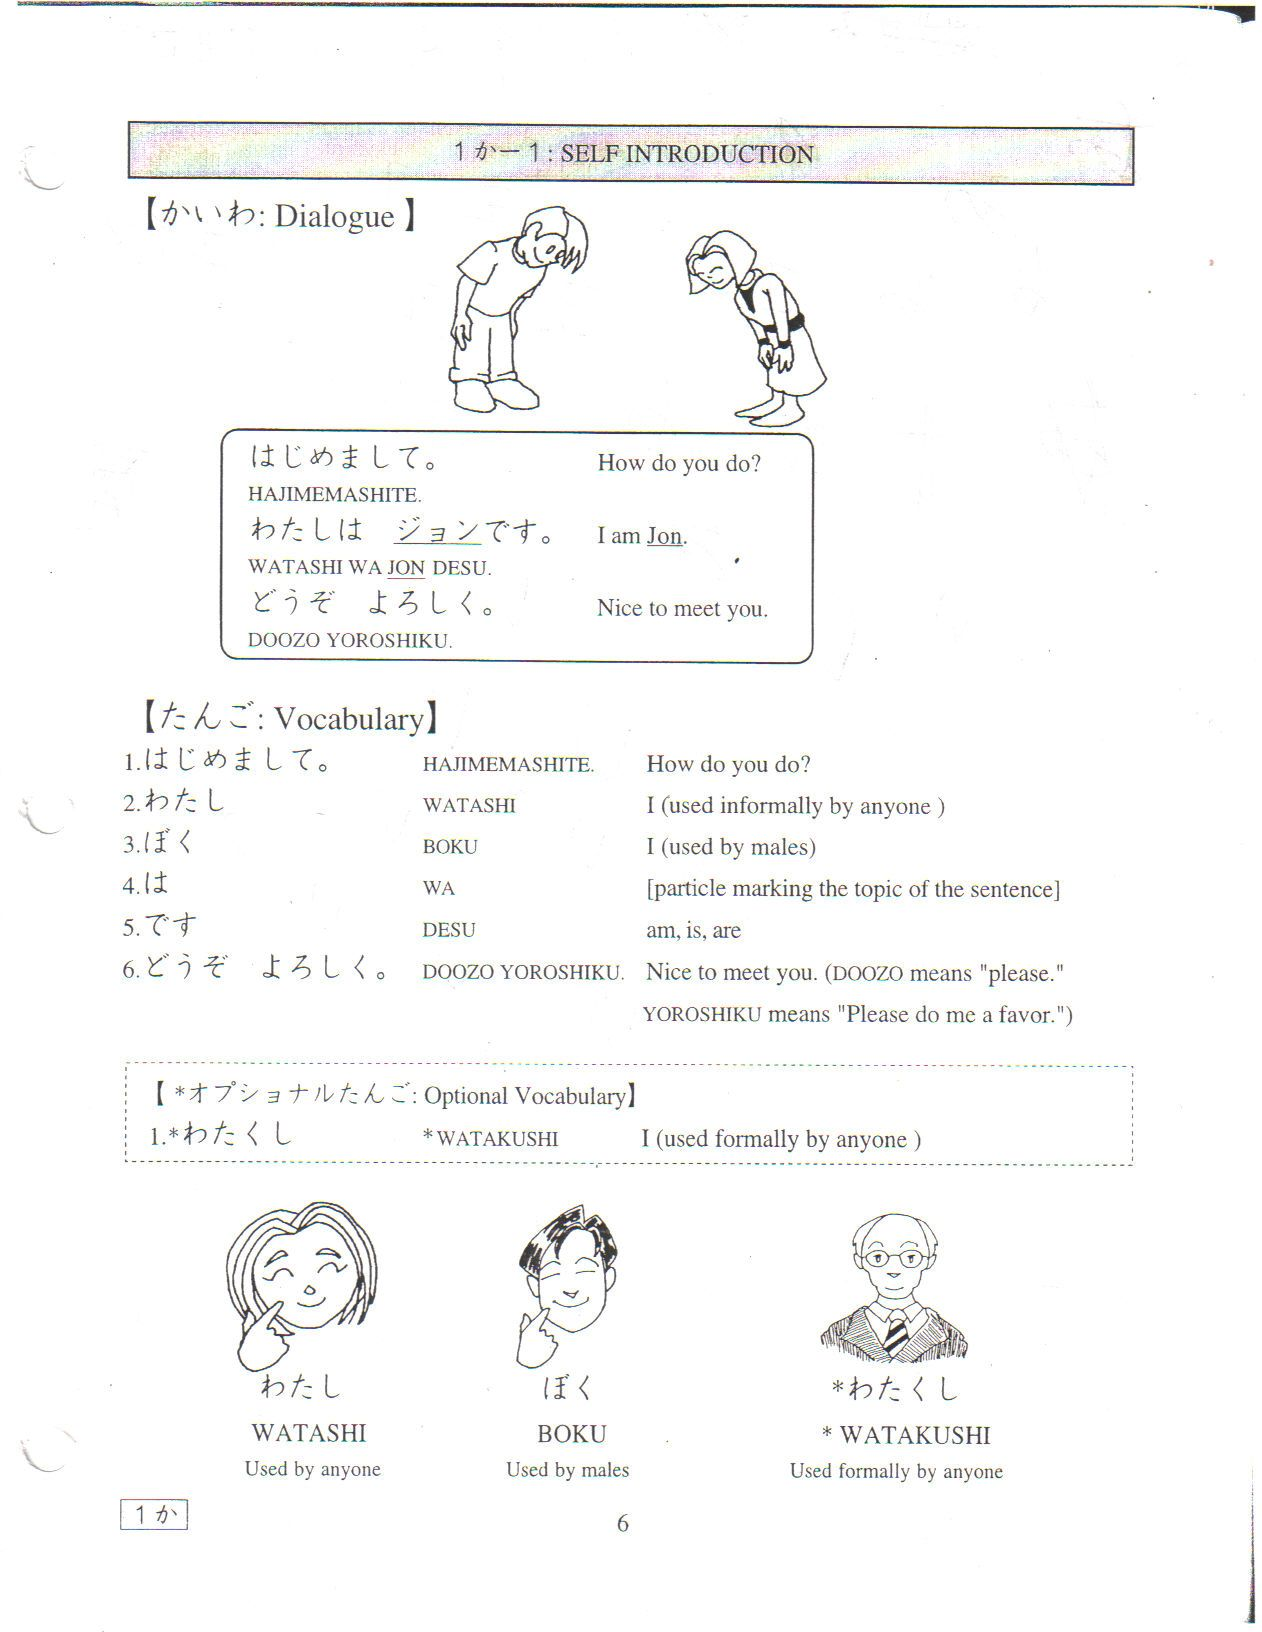 Self introduction Japanese worksheet | Learning Japanese | Pinterest ...